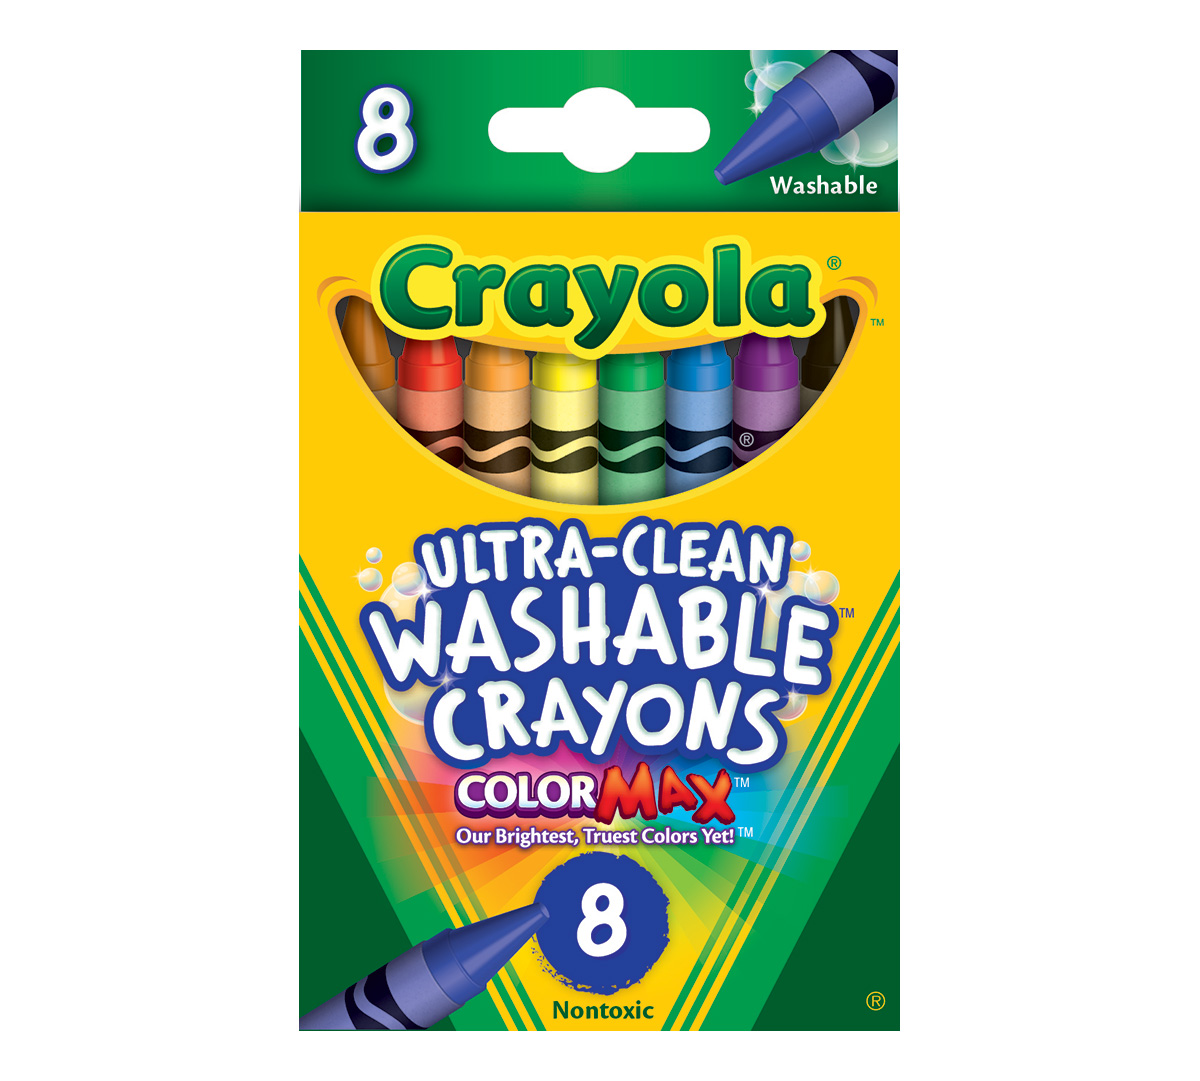 Moana coloring pages crayola - Washable Crayons 8 Ct